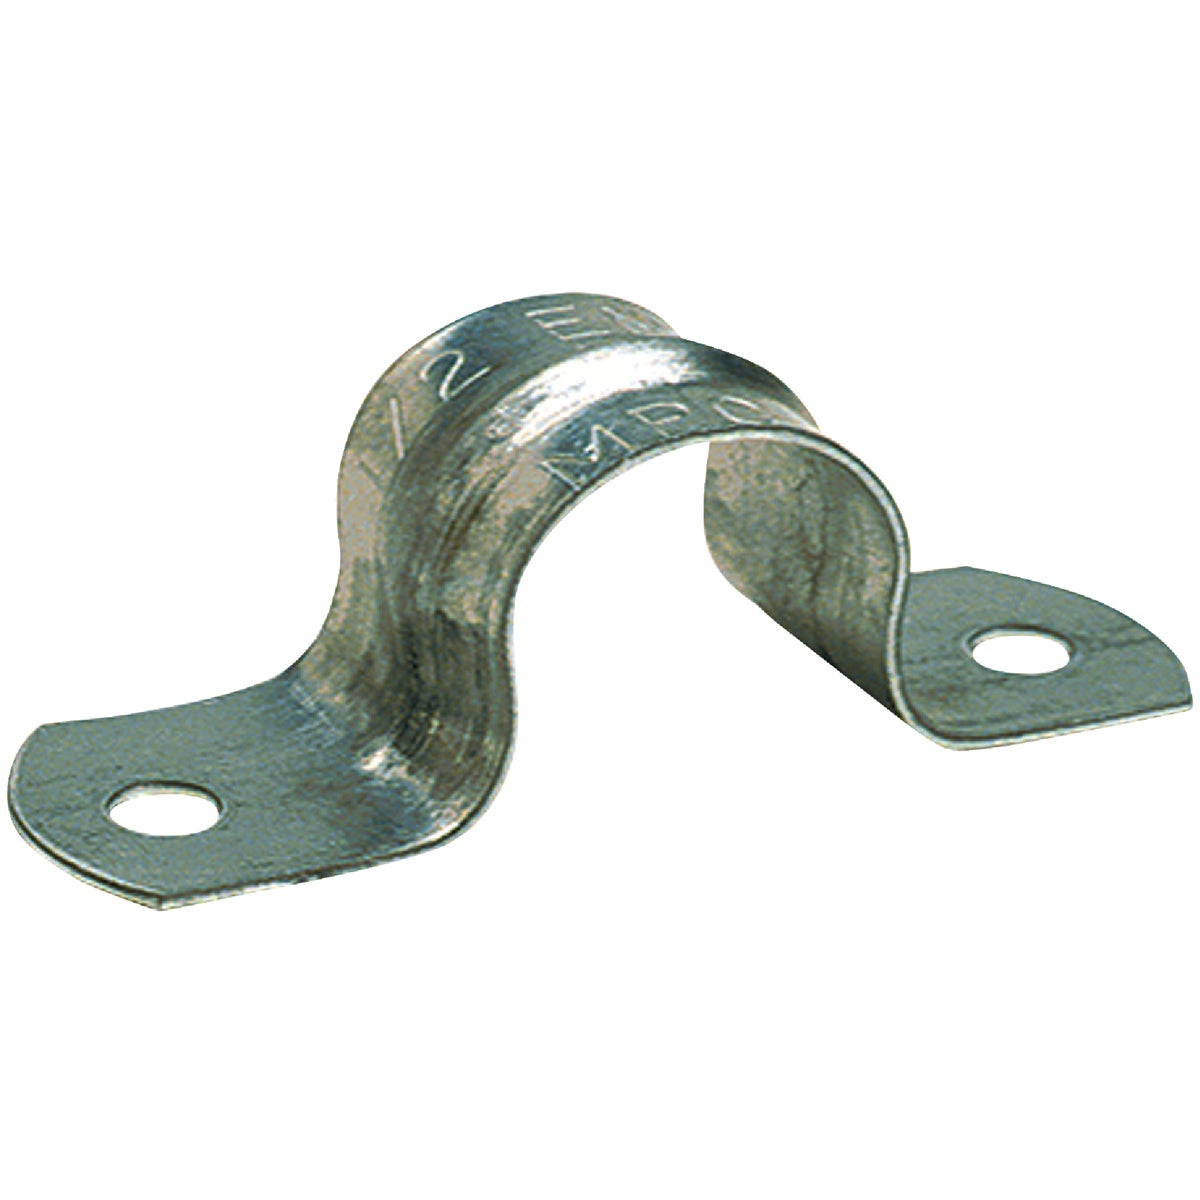 "50 PK 3/4"" 2-HOLE STRAP - TS90250CP by Thomas & Betts"